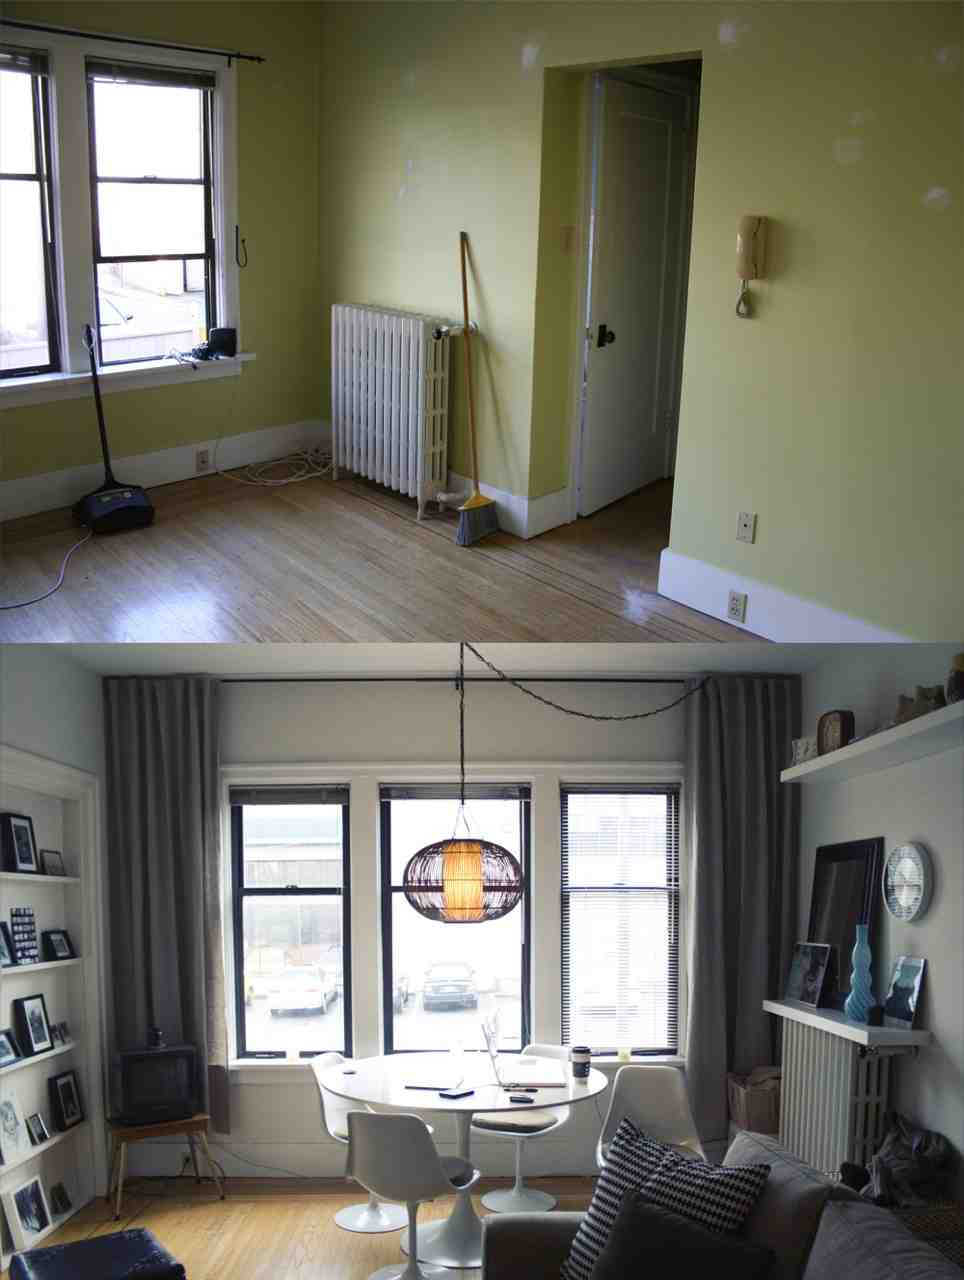 Small Apartment Decorating Ideas on a Budget  Decor